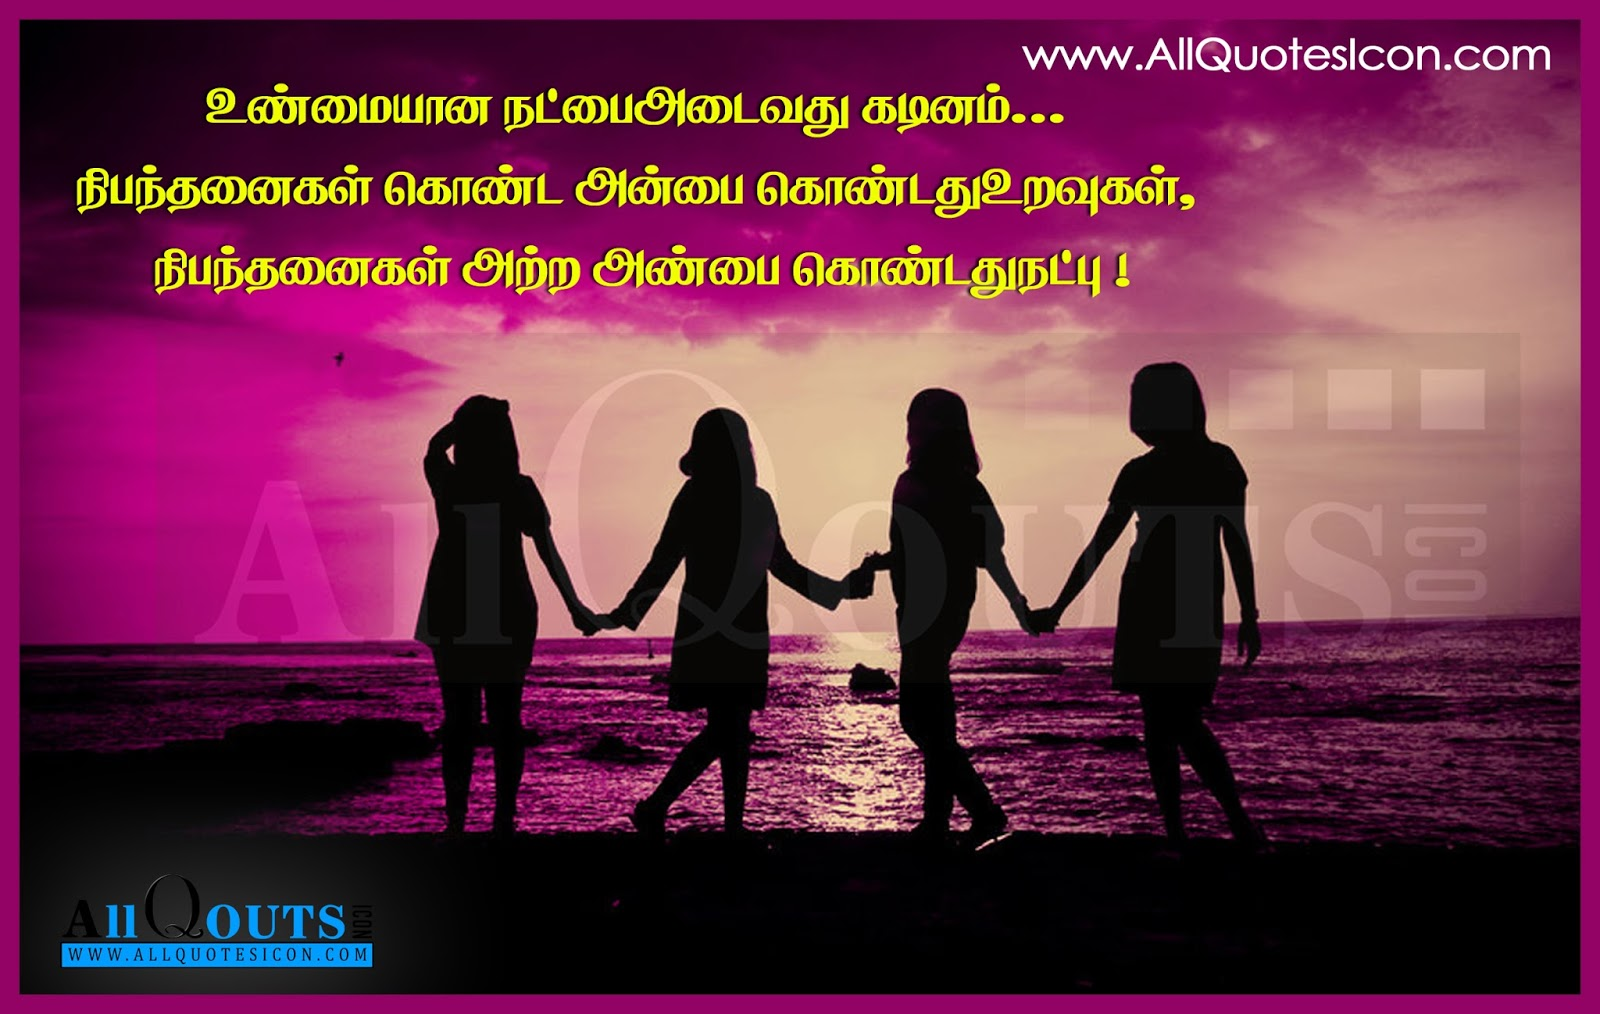 Tamil-Quotes-Images-Wishes-Greetings-Wallpapers-Pictures-free